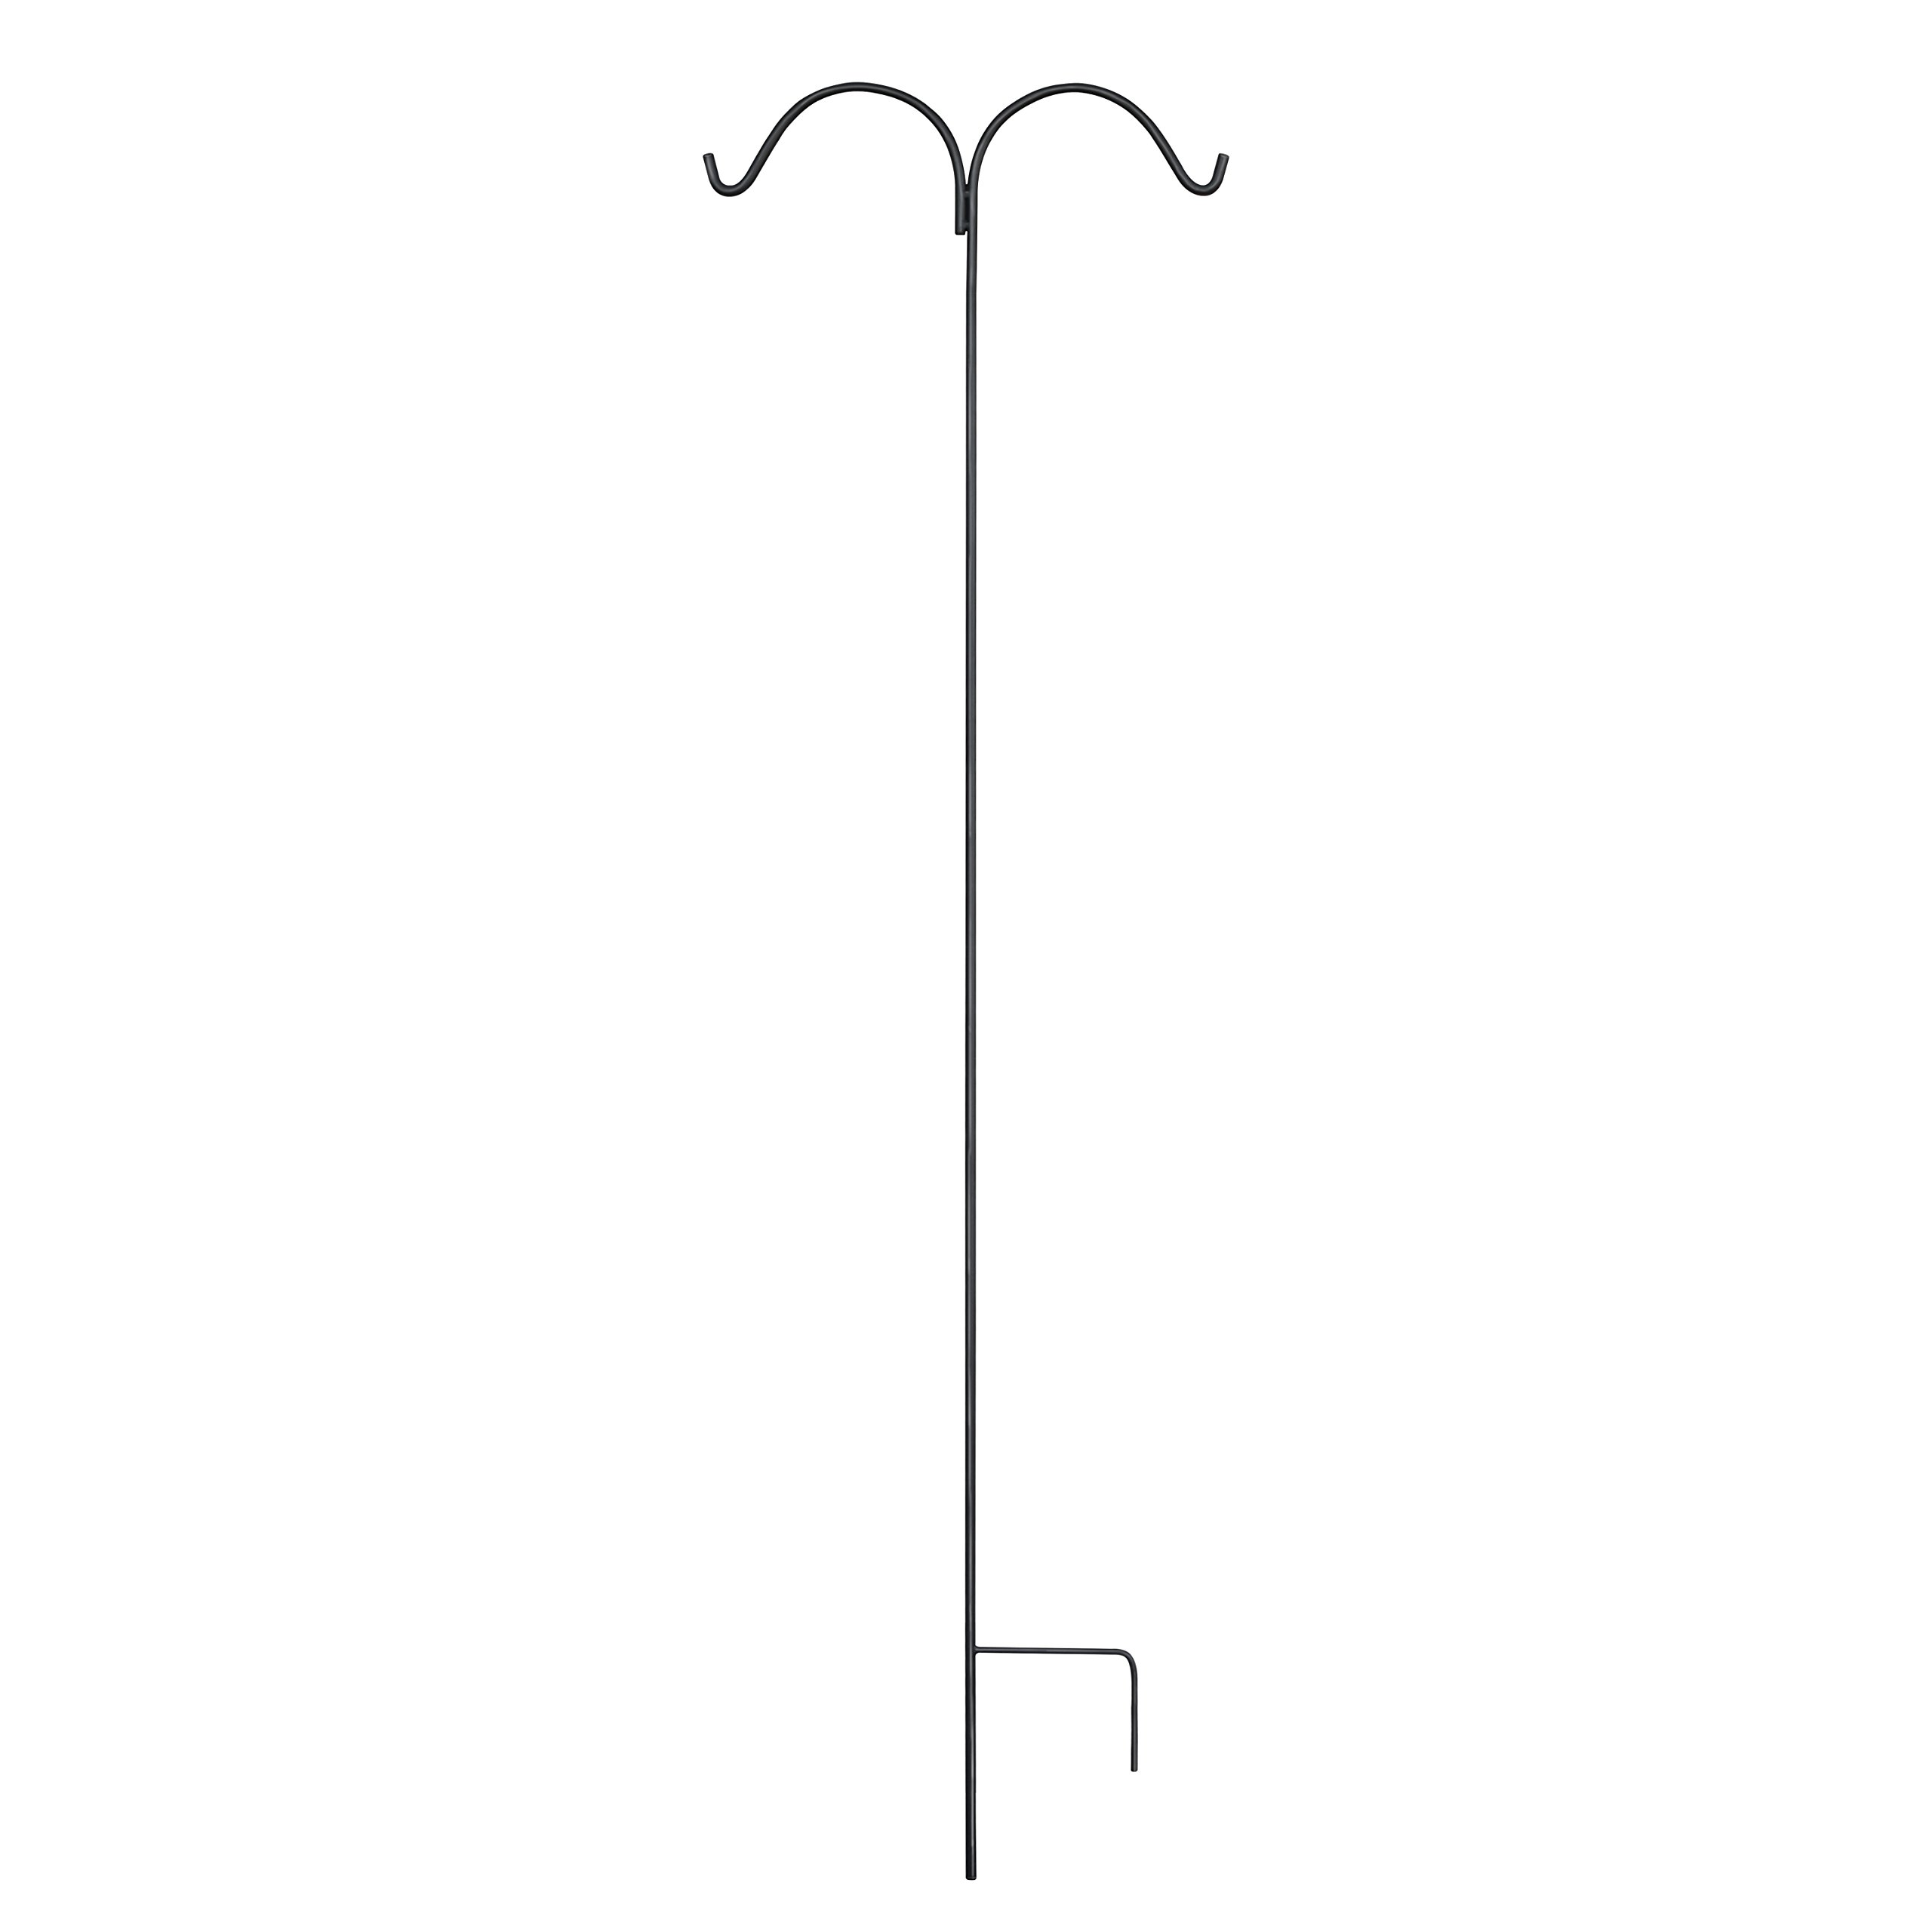 GrayBunny GB-6845D Double Shepherd Hook, 92 Inch, 3/5 Inch Thick Single Piece Heavy Duty Steel Hooks For Hanging Solar Lights, Bird Feeders, Mason Jars Plant Hangers Flower Baskets Lanterns & Planters